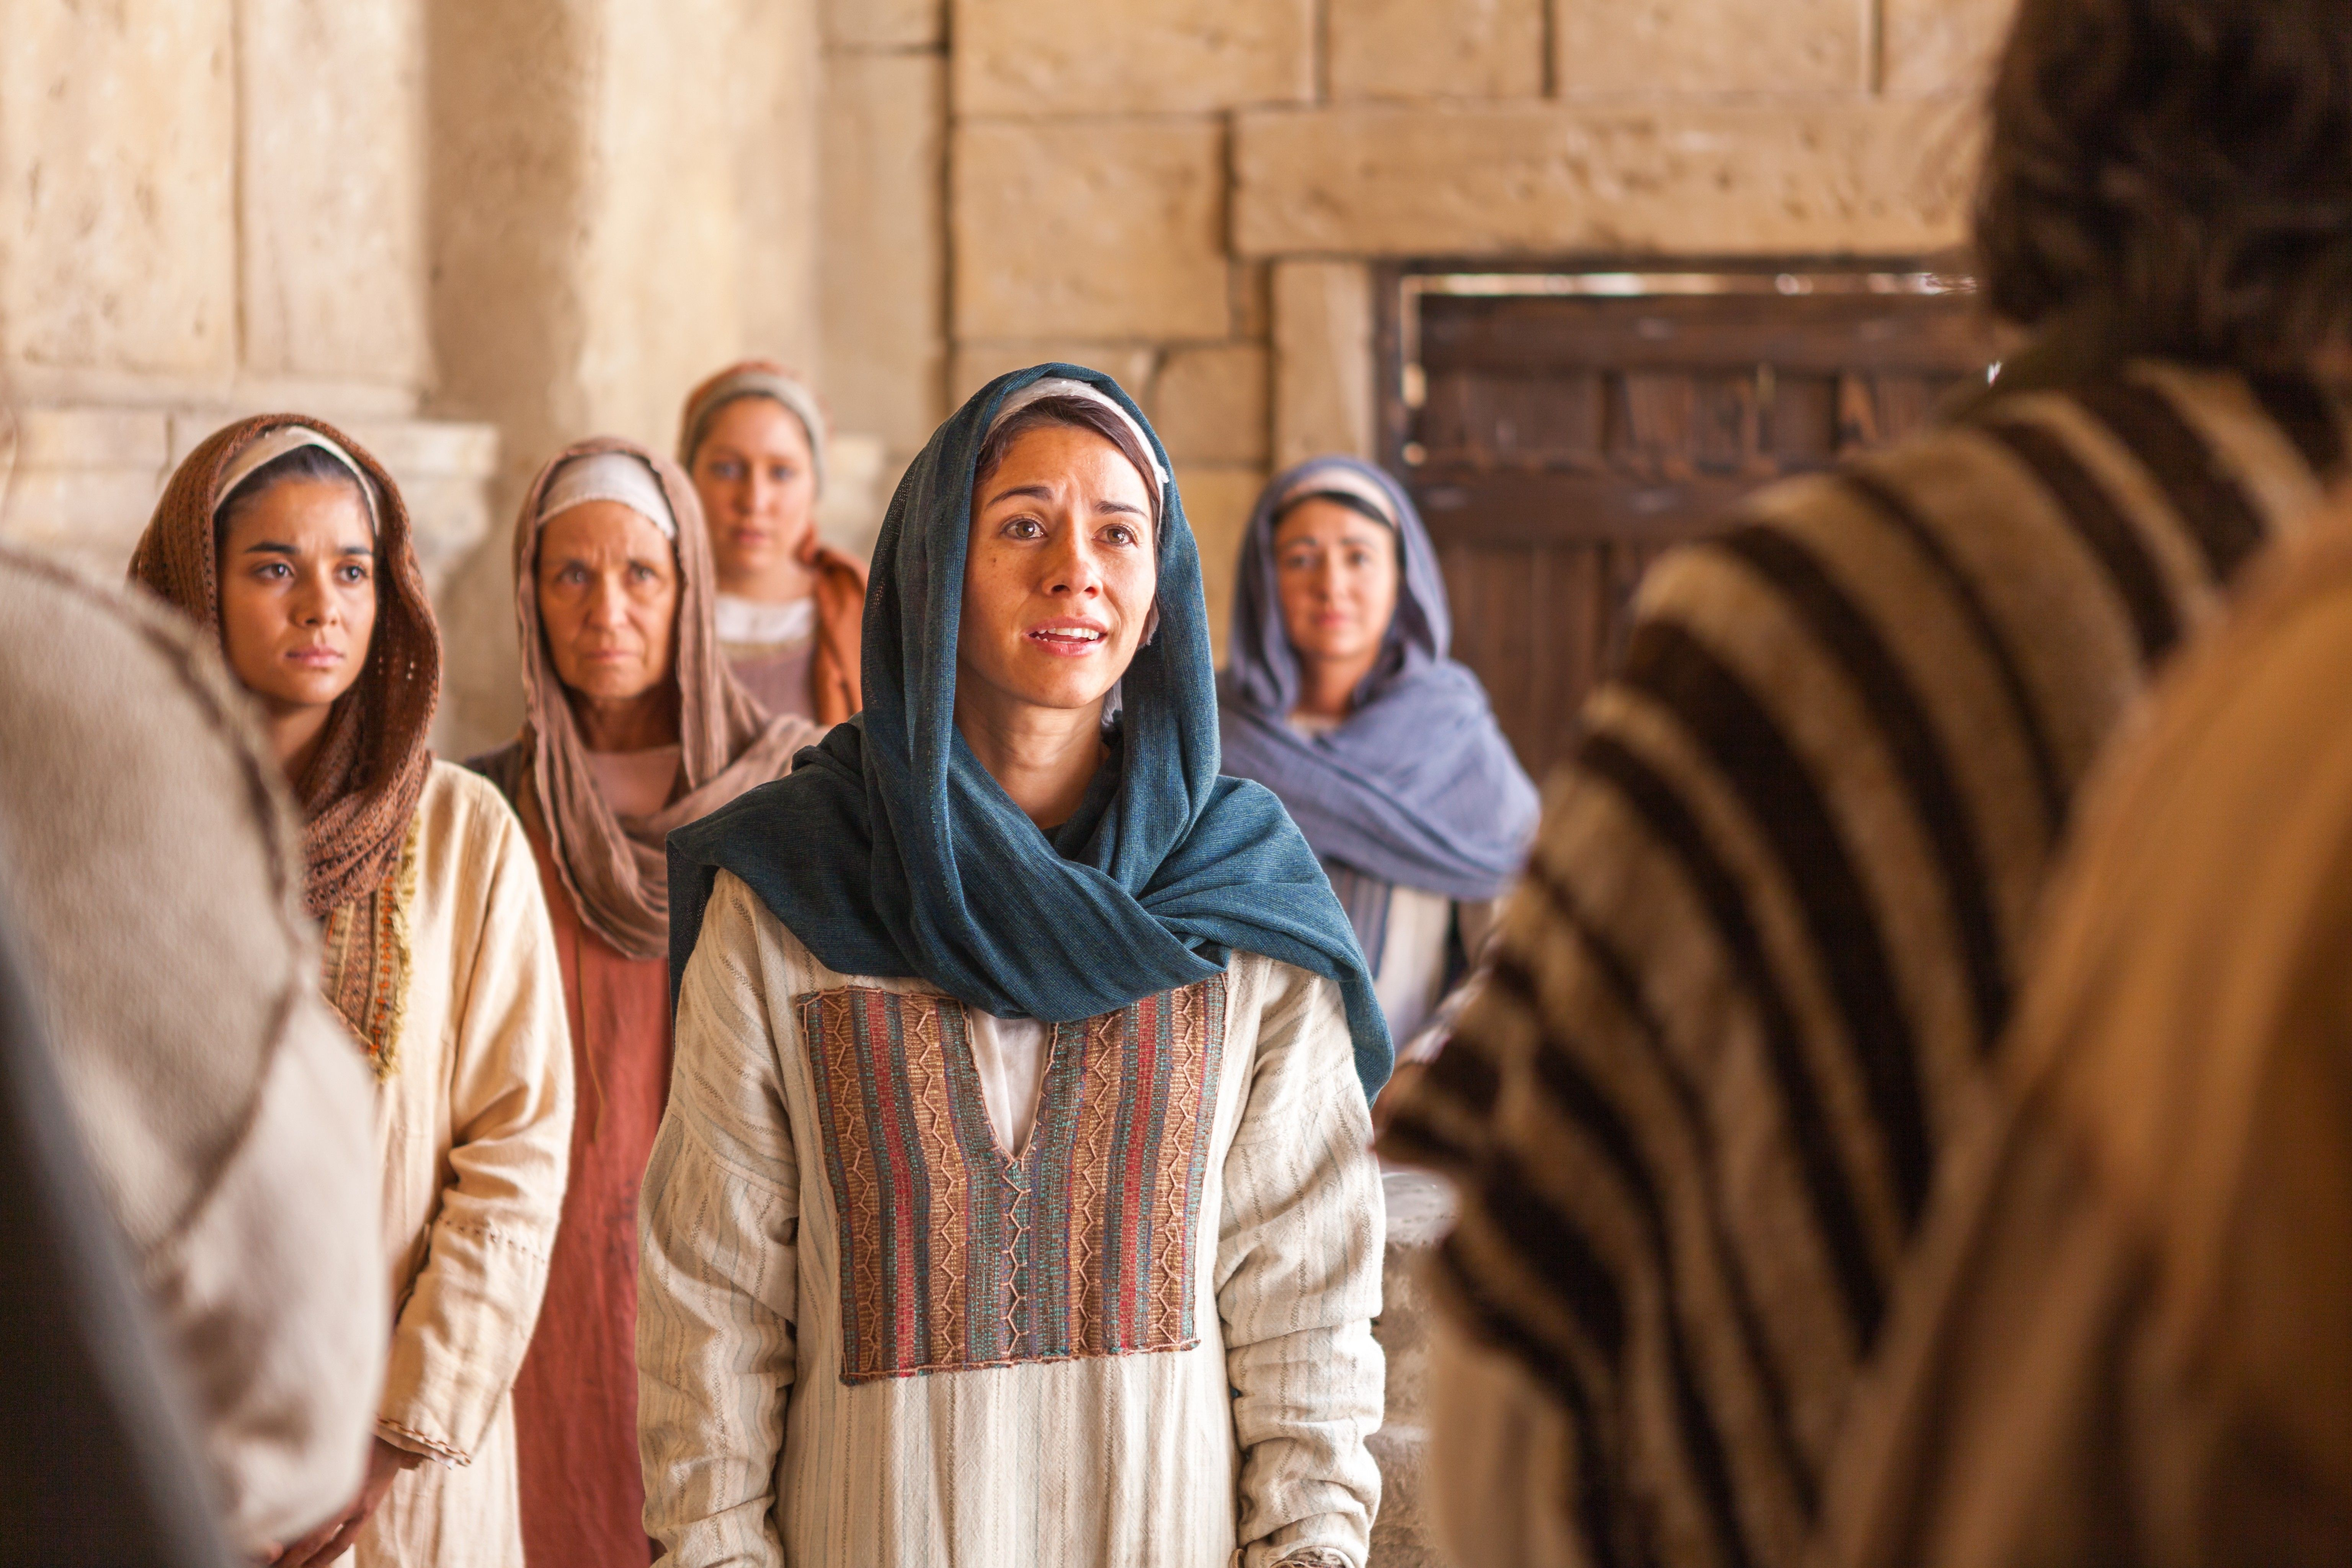 Mary Magdalene tells the disciples that she has seen the resurrected Savior.